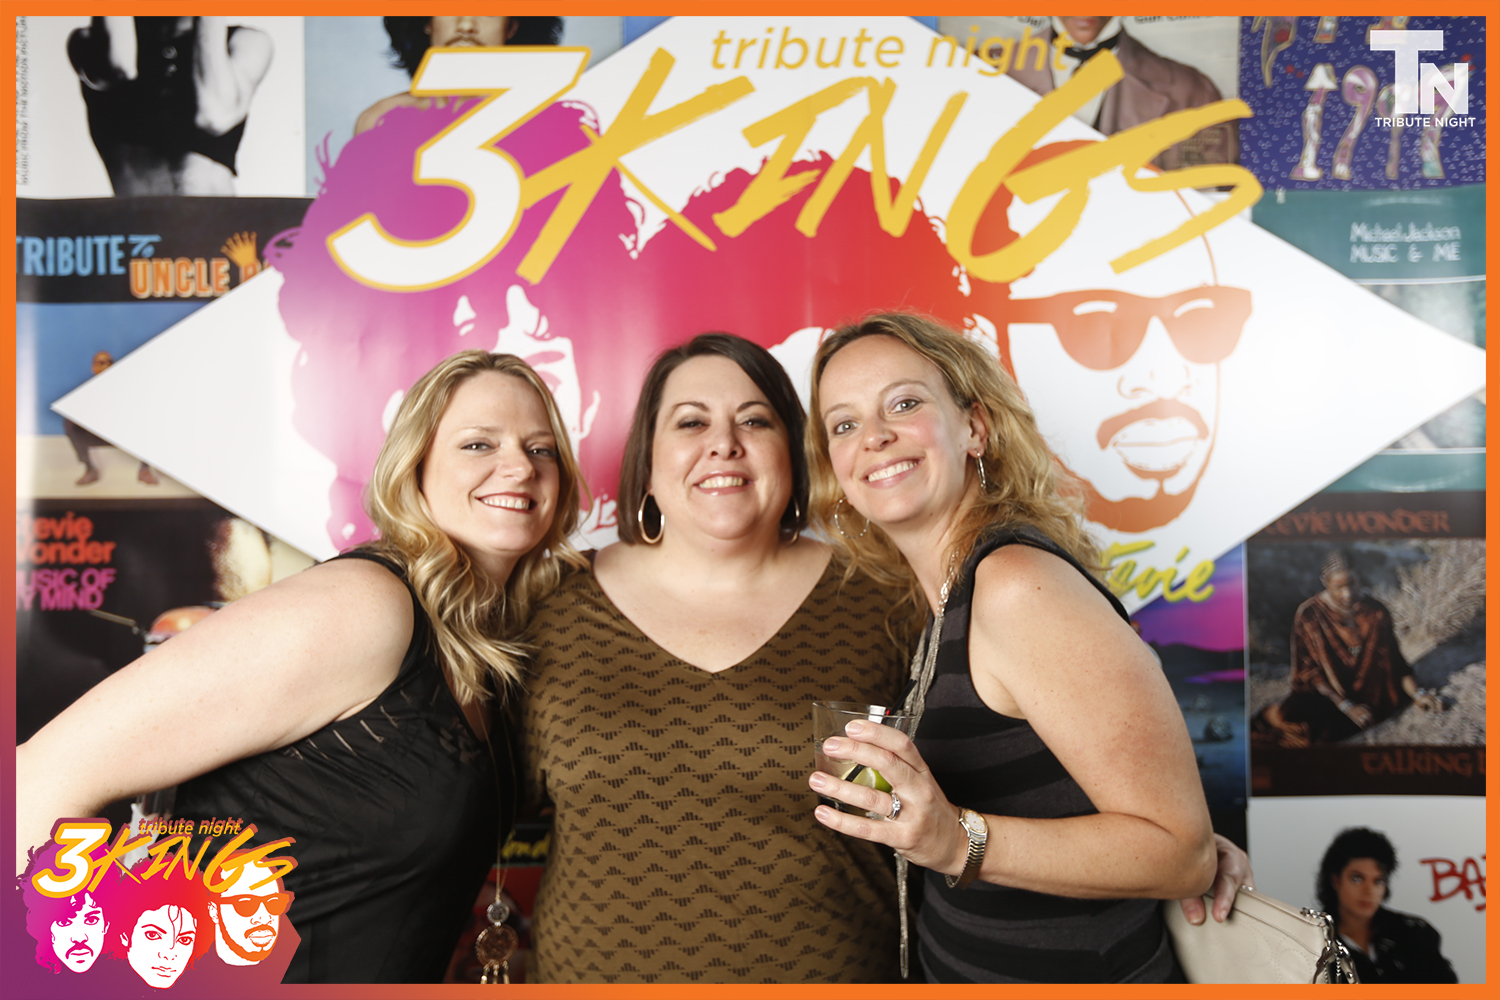 3kings Tribute Night Logo143.jpg